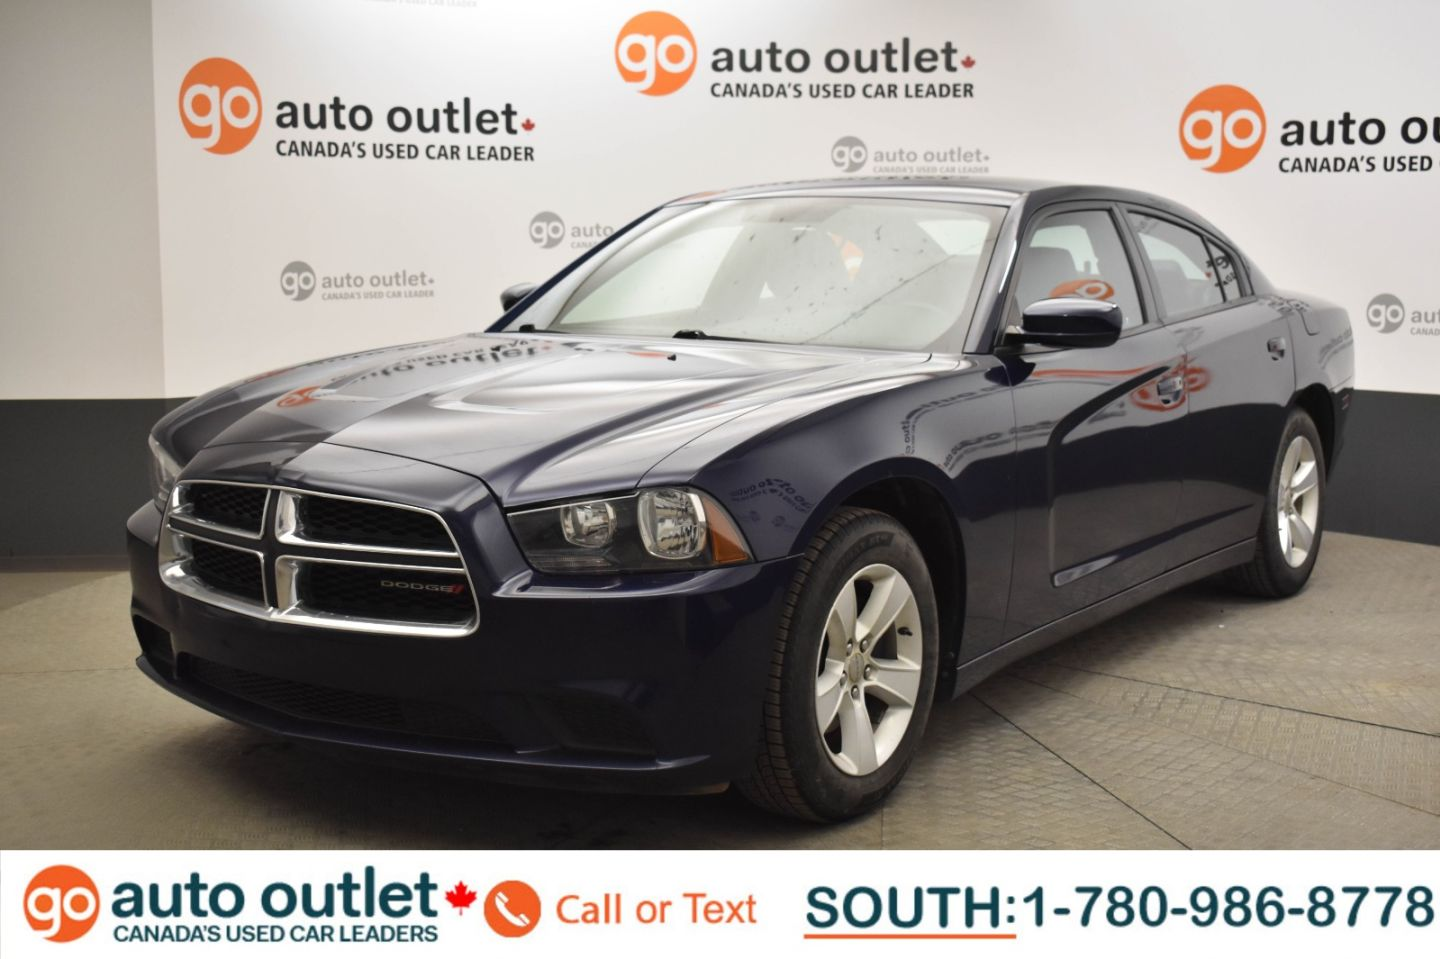 2014 Dodge Charger SE for sale in Leduc, Alberta